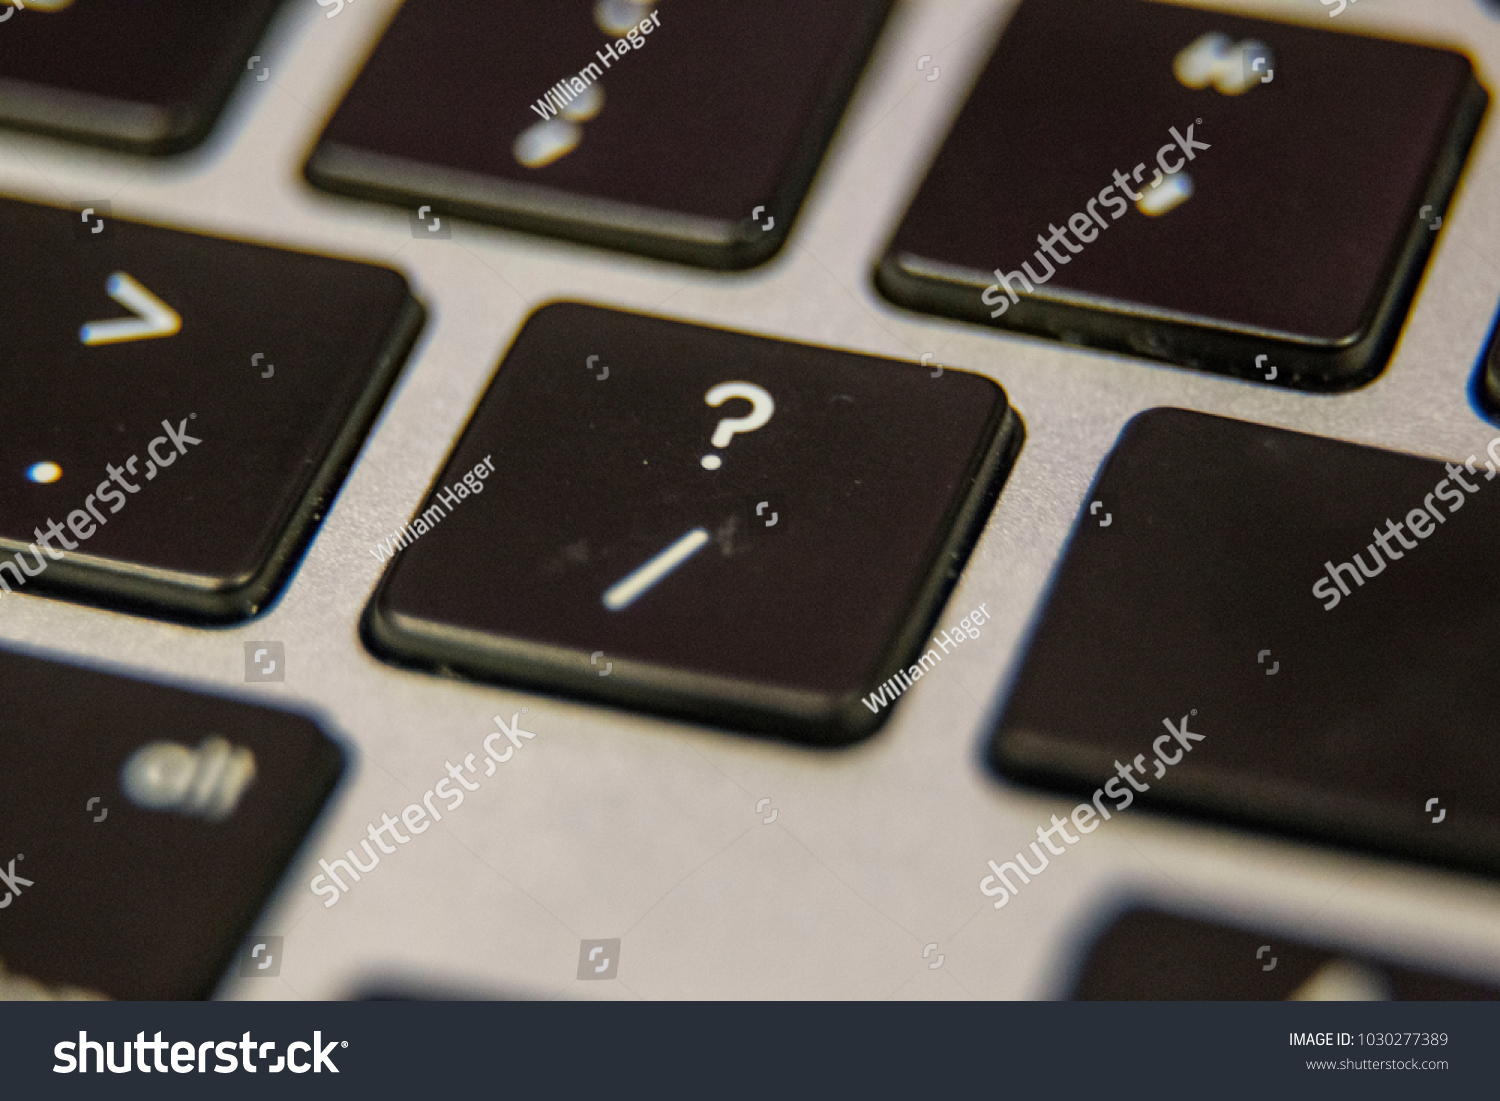 Question Mark Slash Symbol Keyboard Key Stock Photo Royalty Free